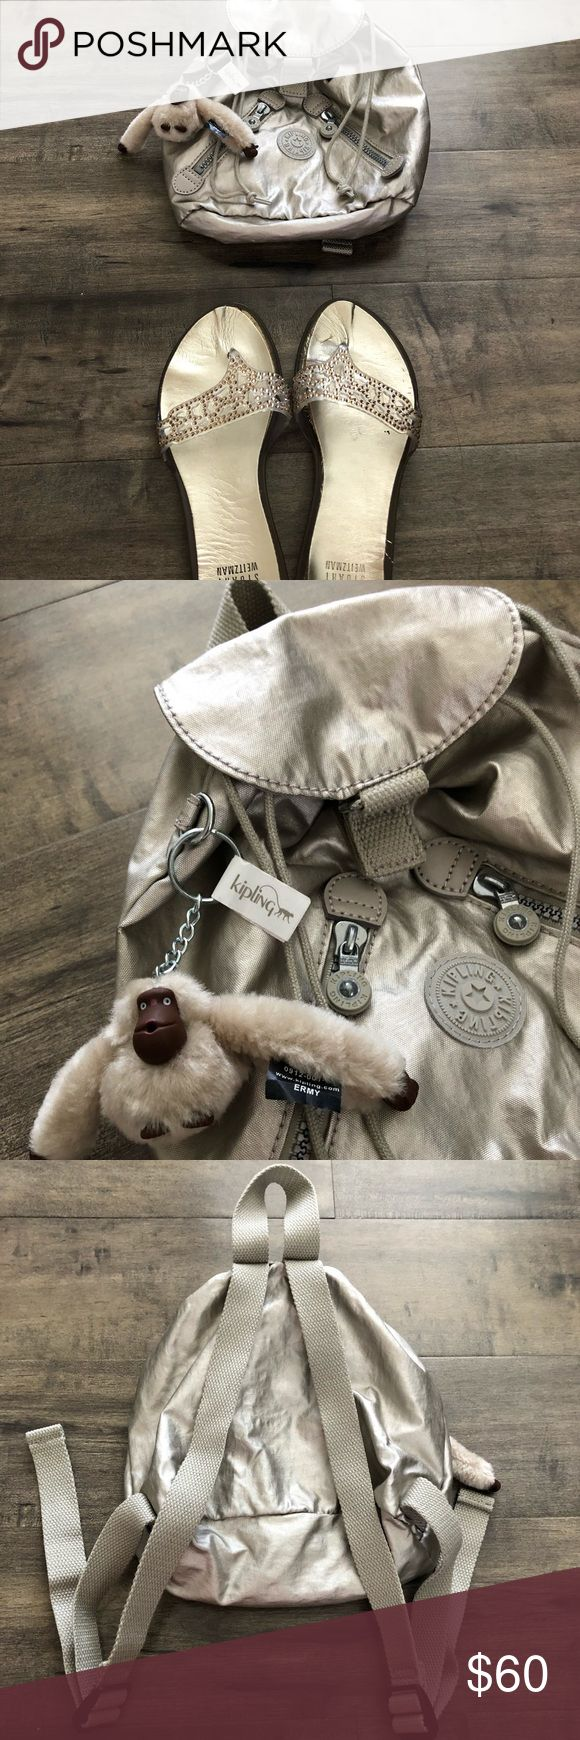 EUC Kipling Metallic Fundamental Backpack mini🐒 NWOT Authentic hard to find Kipling metallic backpack sells on Amazon for $140! Comes with monkey of course 🐵 sweet bag! Don't let this get away👉🏻😊✨Happy Poshing! Kipling Bags Backpacks